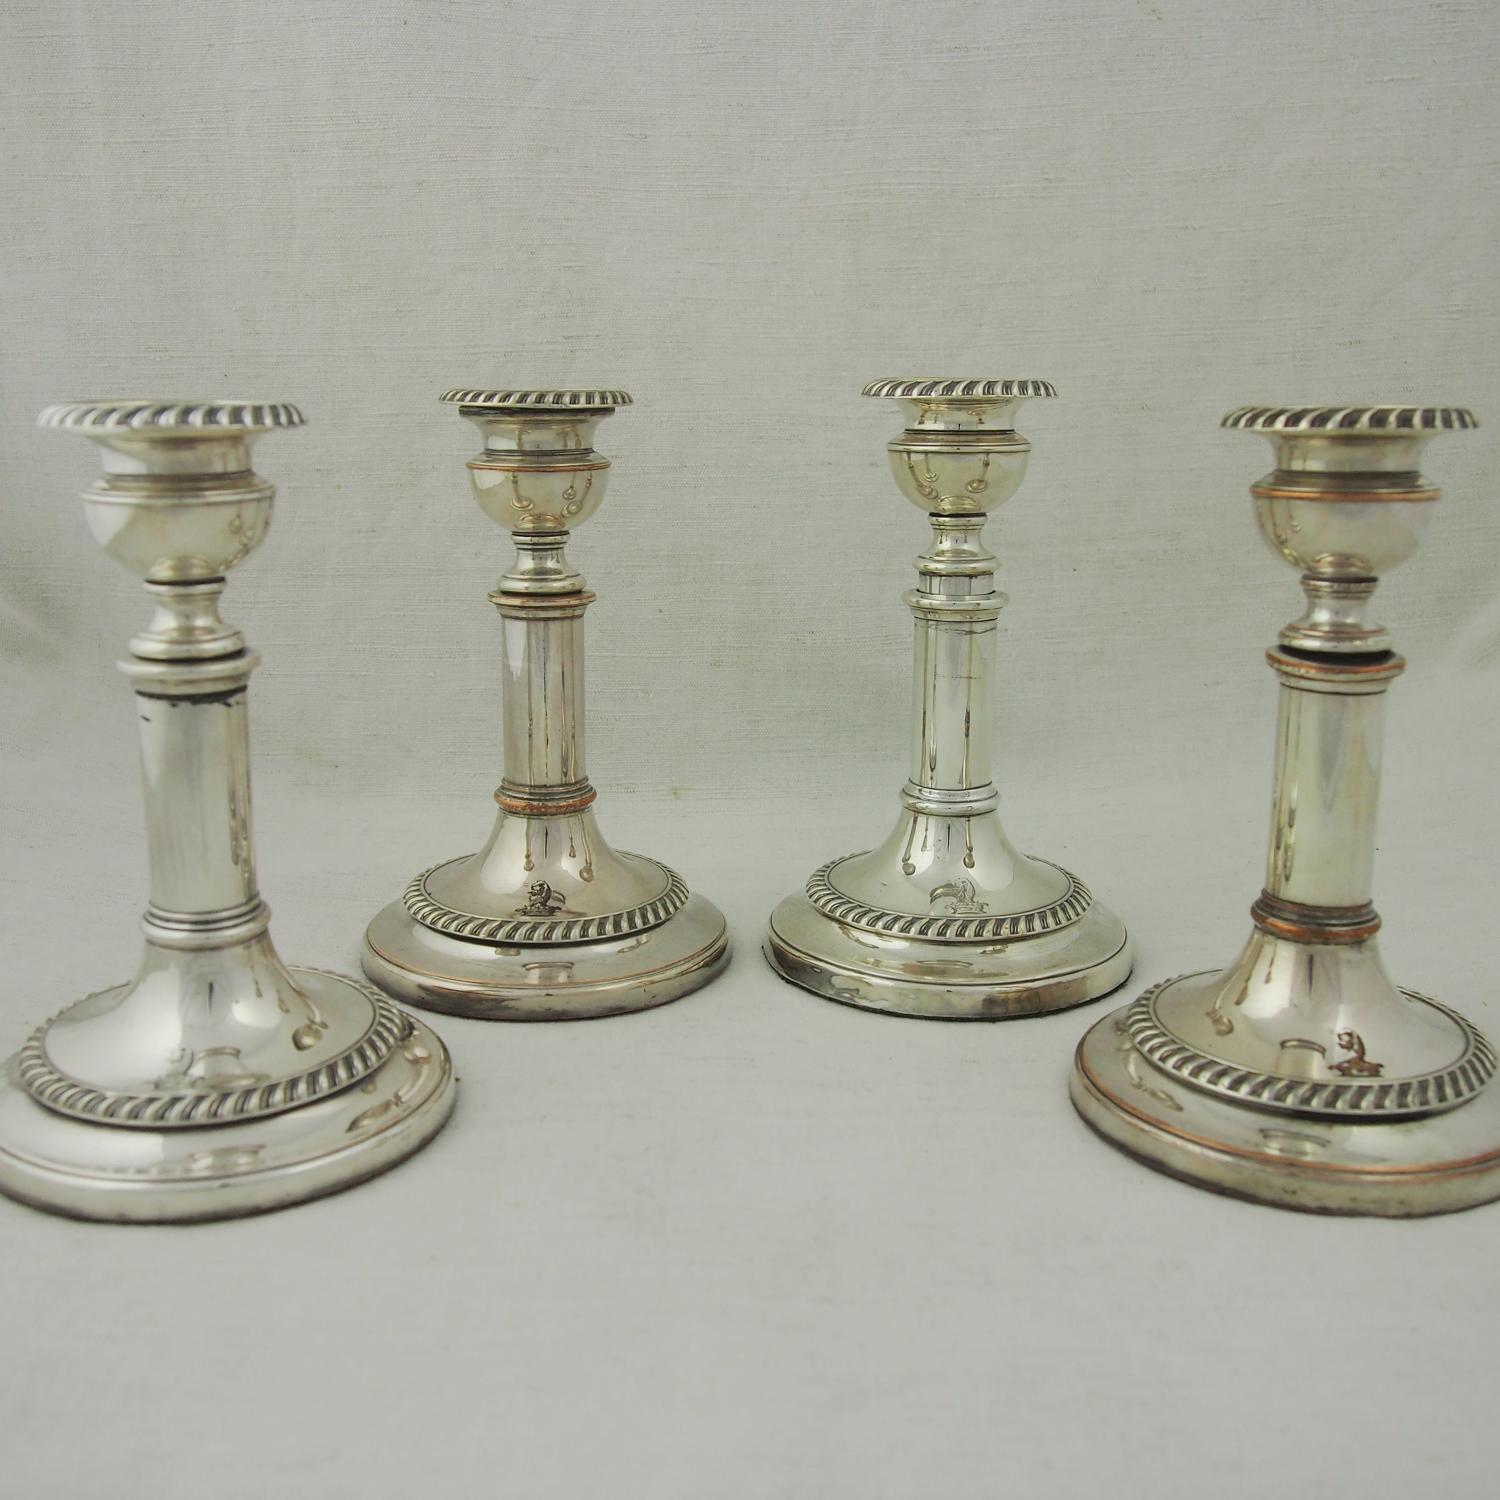 Silver Plated Victorian Set of Crested Candlesticks